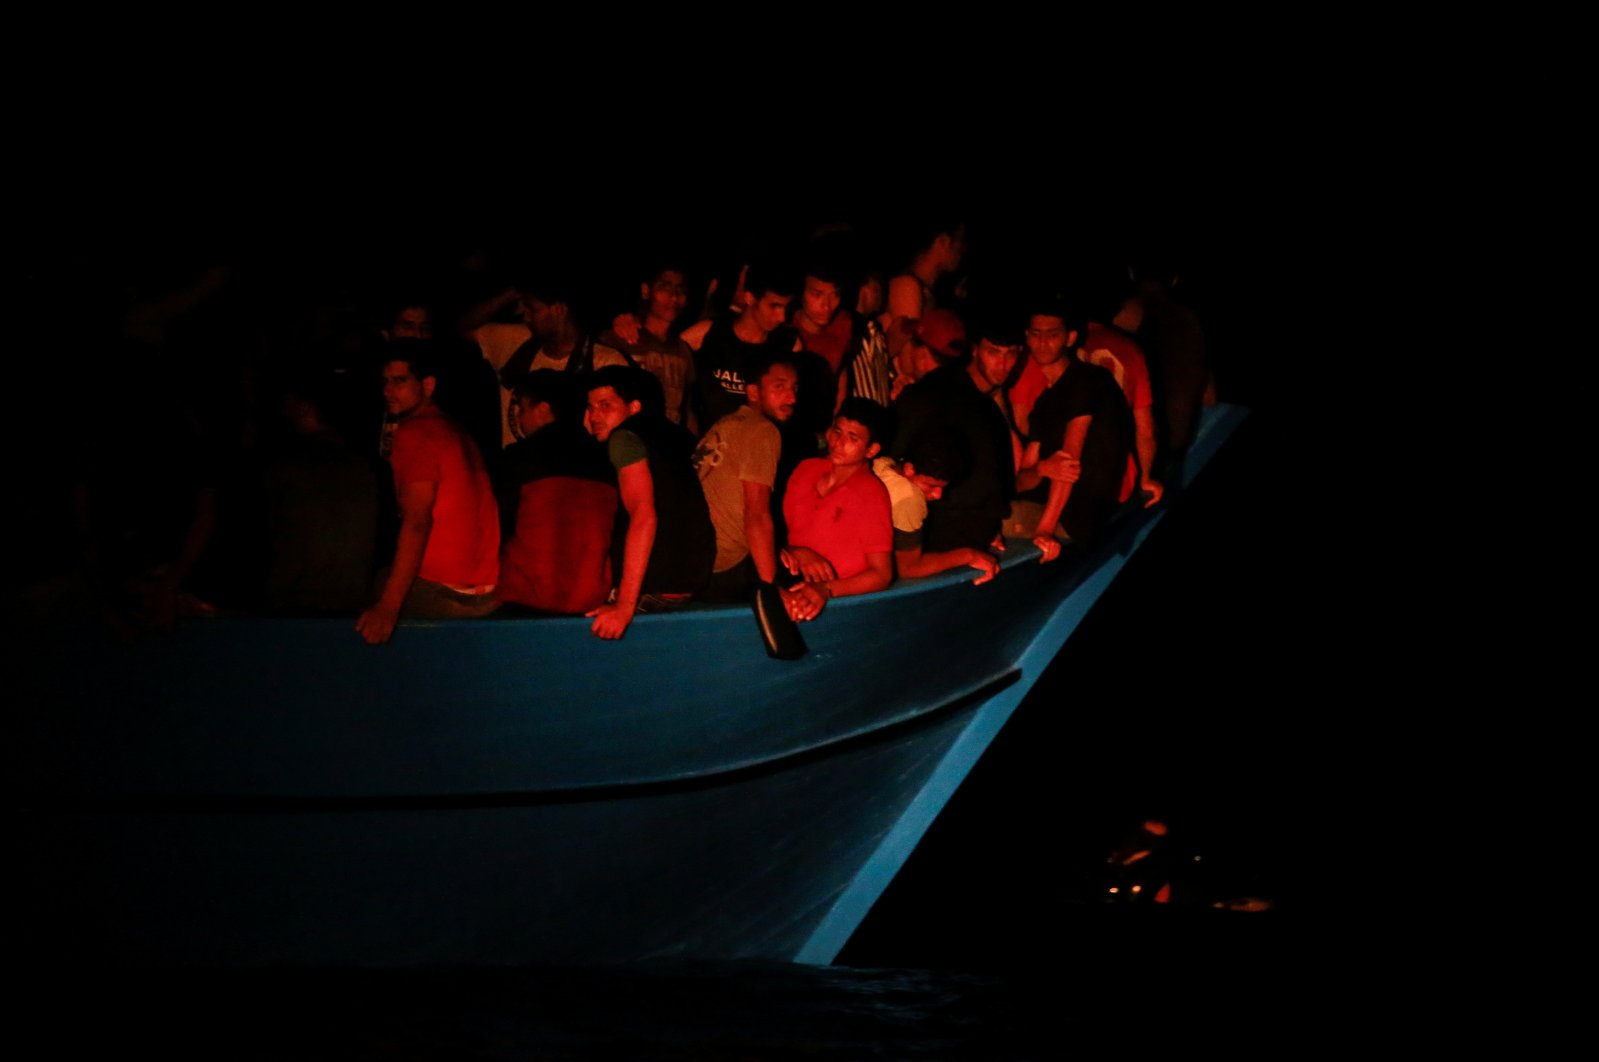 Migrants on an overcrowded wooden boat await rescue by the German NGO migrant rescue ship Sea-Watch 3 and the French NGO SOS Mediterranee ship Ocean Viking, during a rescue operation in international waters off the coast of Tunisia, the western Mediterranean Sea, July 31, 2021. (Reuters Photo)